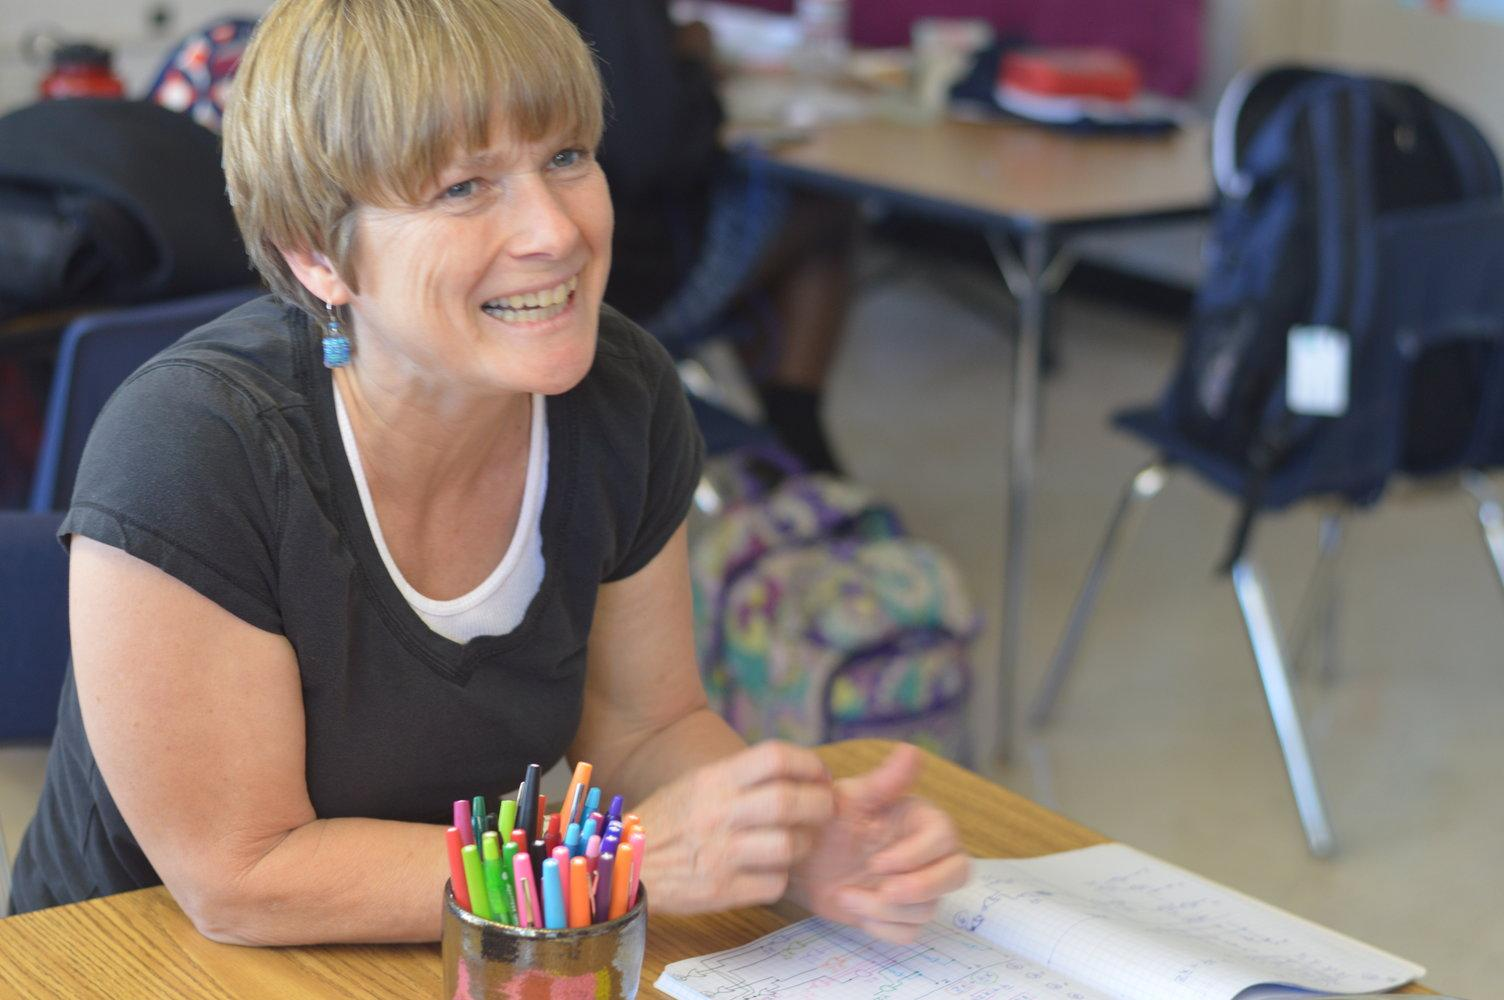 Under construction: Infinite works in progress and one Teacher of the Year